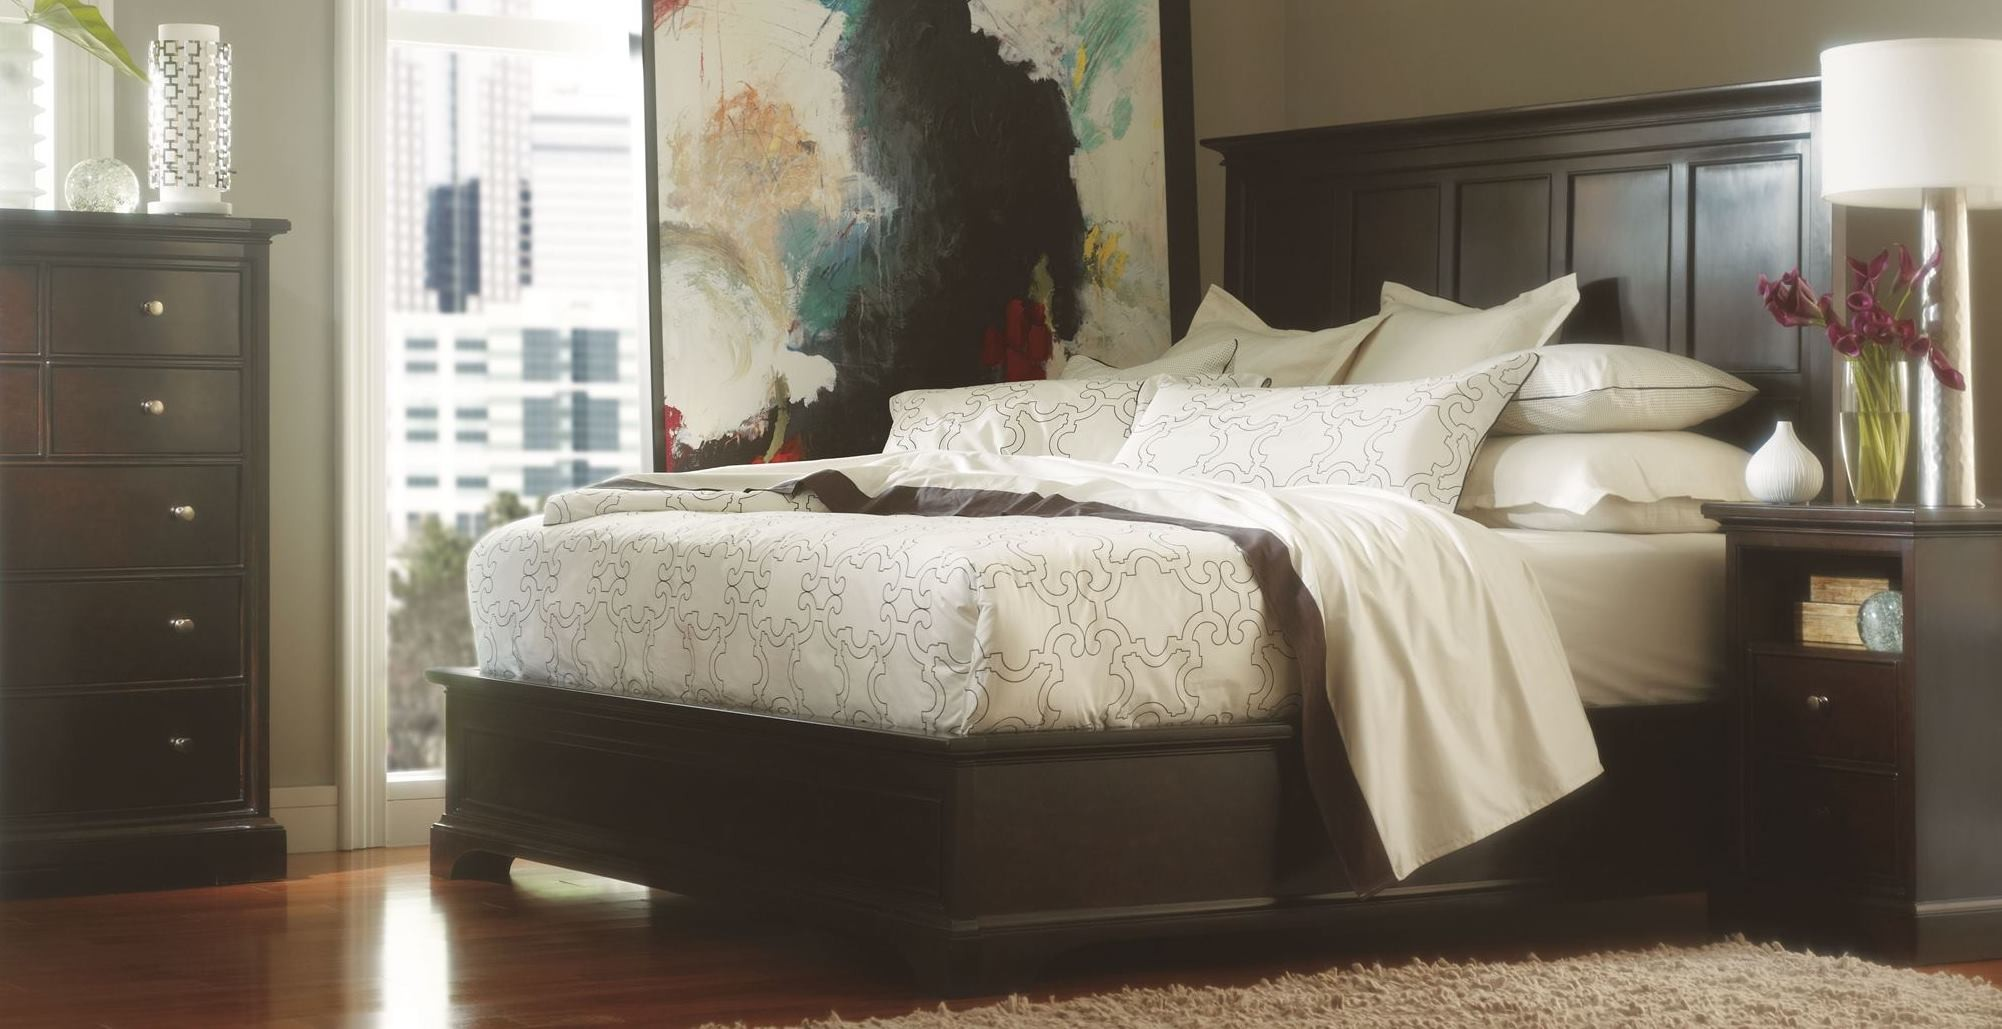 Transitional Platfrom Bedroom Set From Stanley 042 13 40 Coleman Furniture